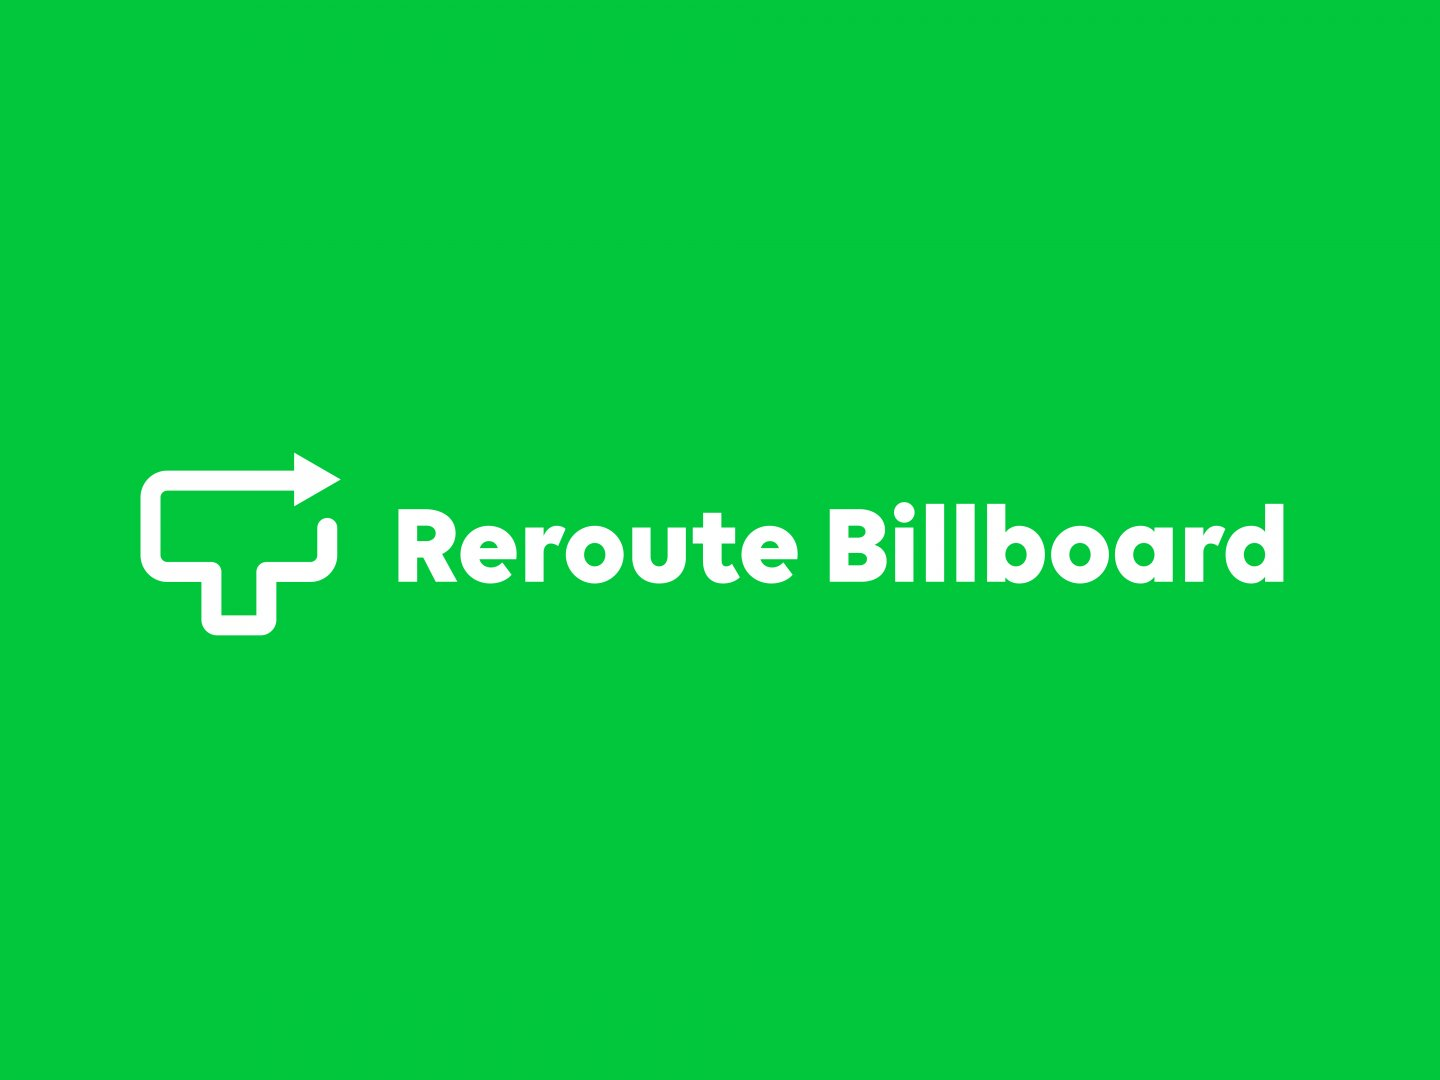 Re-route Billboard Thumbnail